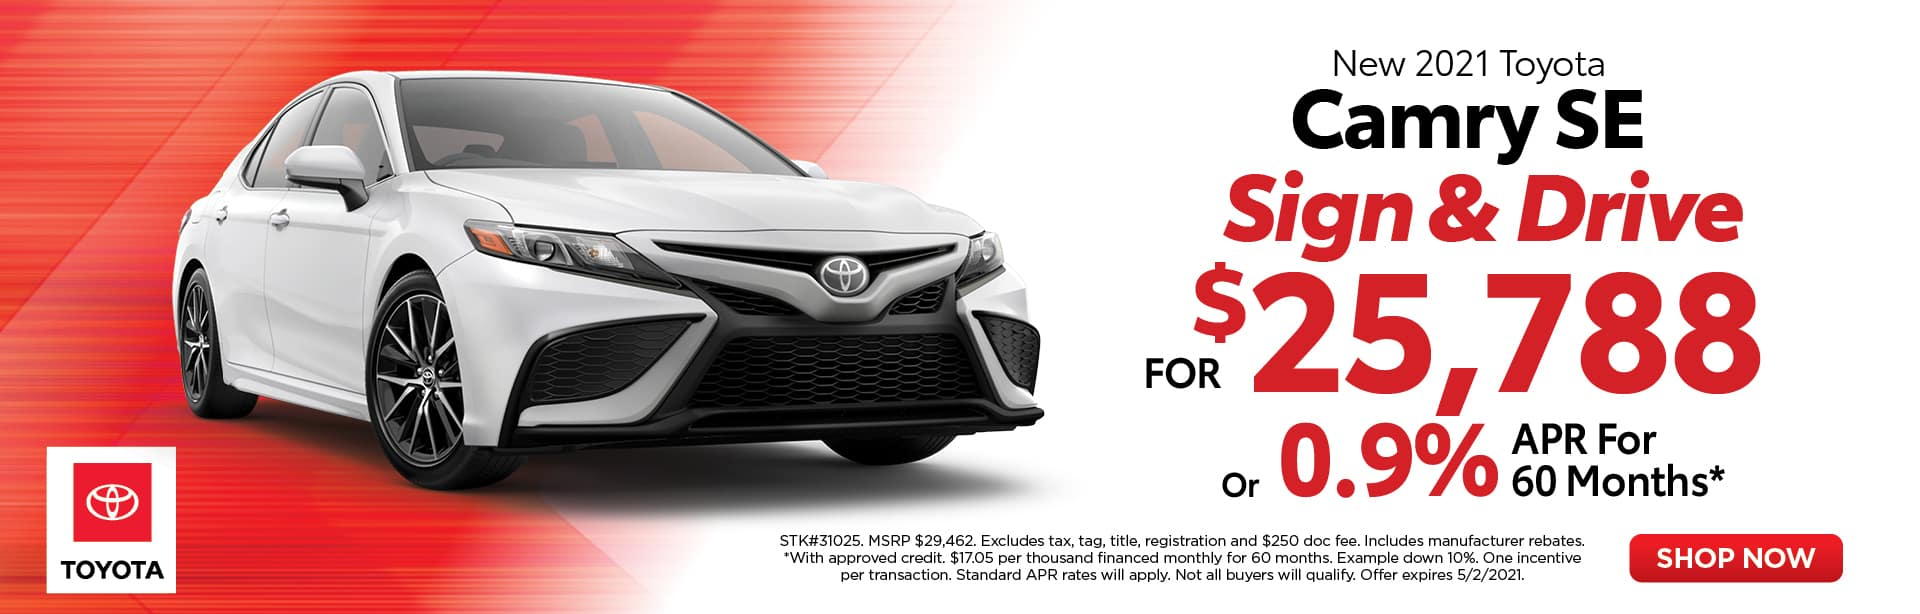 Camry Sign & Drive